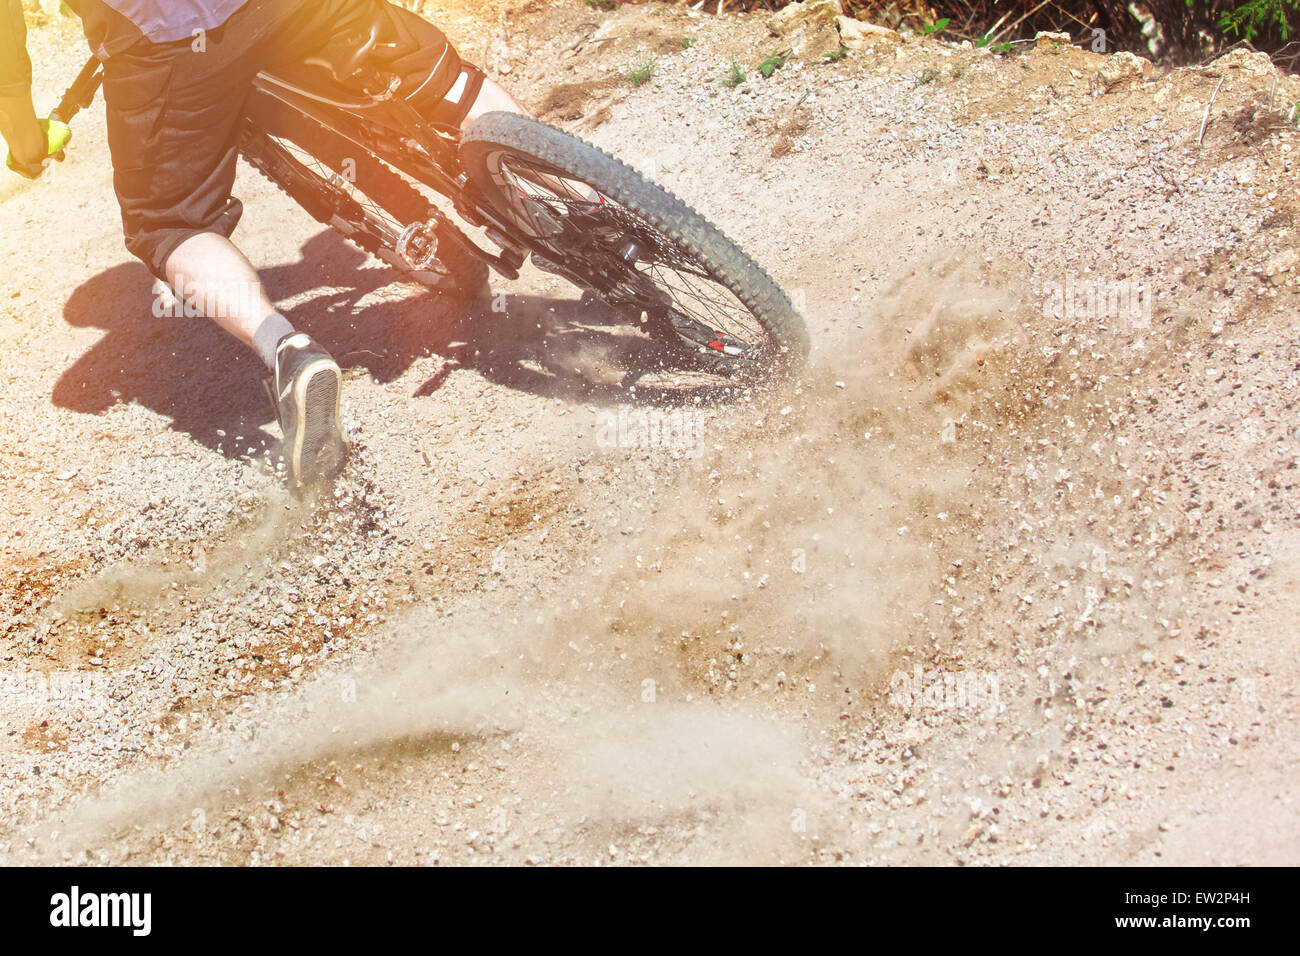 Mountain bike rider drifts through a gravity slope of an artificial downhill track. Gravel sprays upwards. - Stock Image